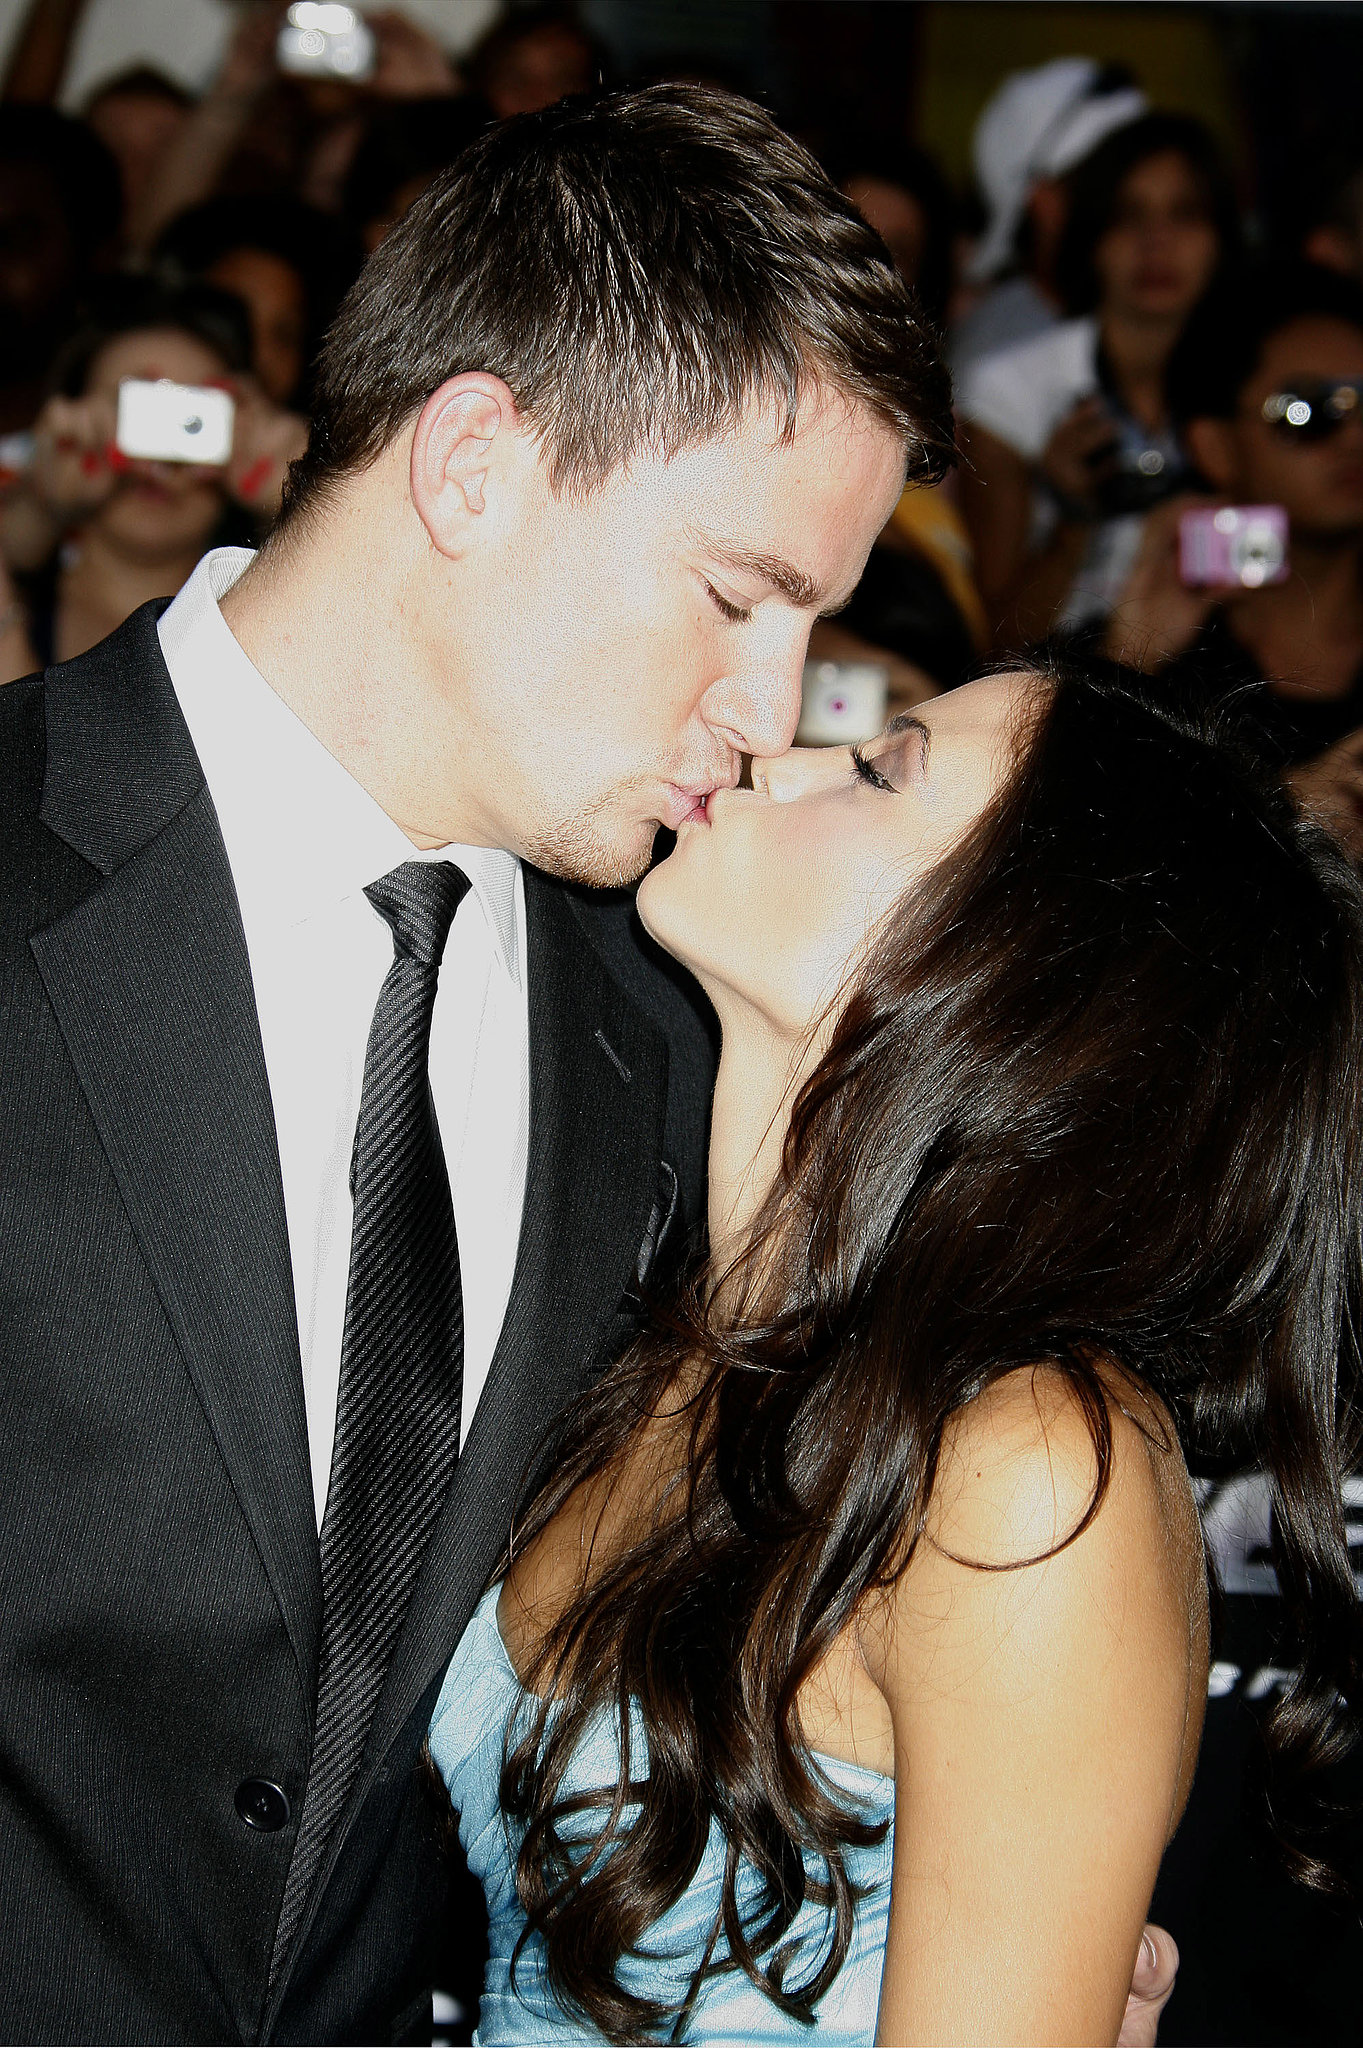 Channing kissed Jenna for the cameras in August 2009.